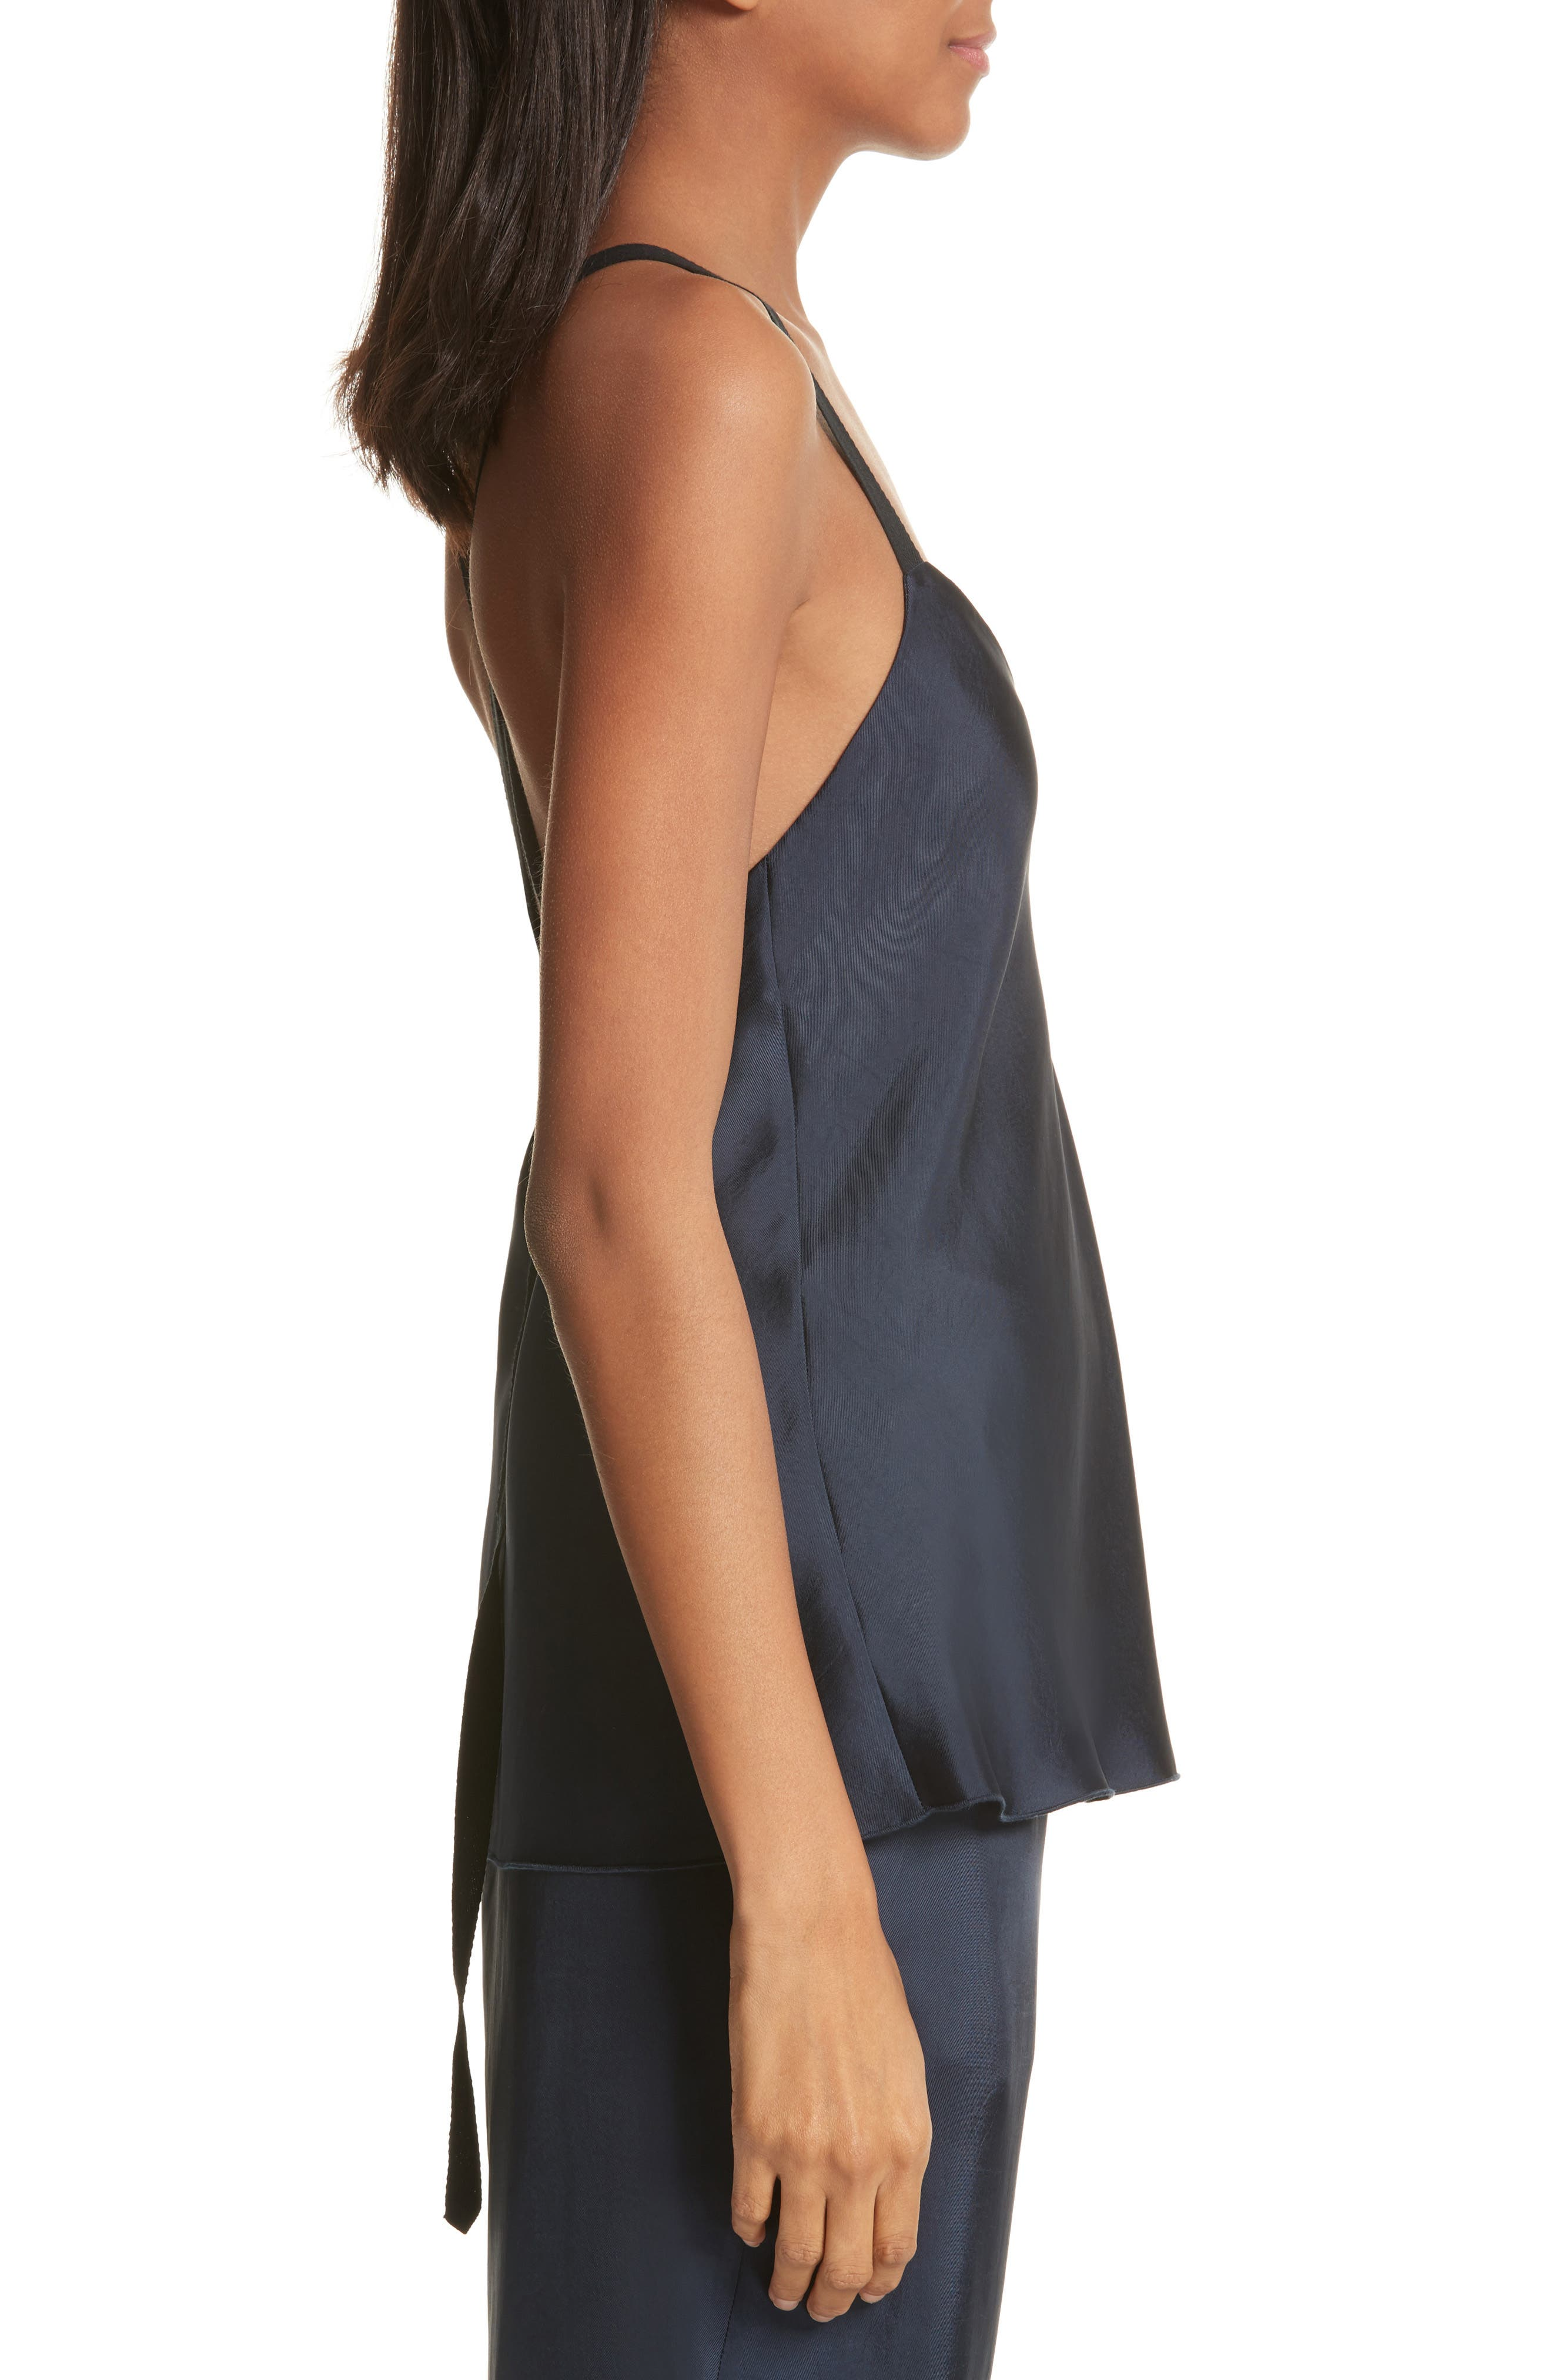 Mendini Strappy Back Silk Camisole,                             Alternate thumbnail 3, color,                             Navy